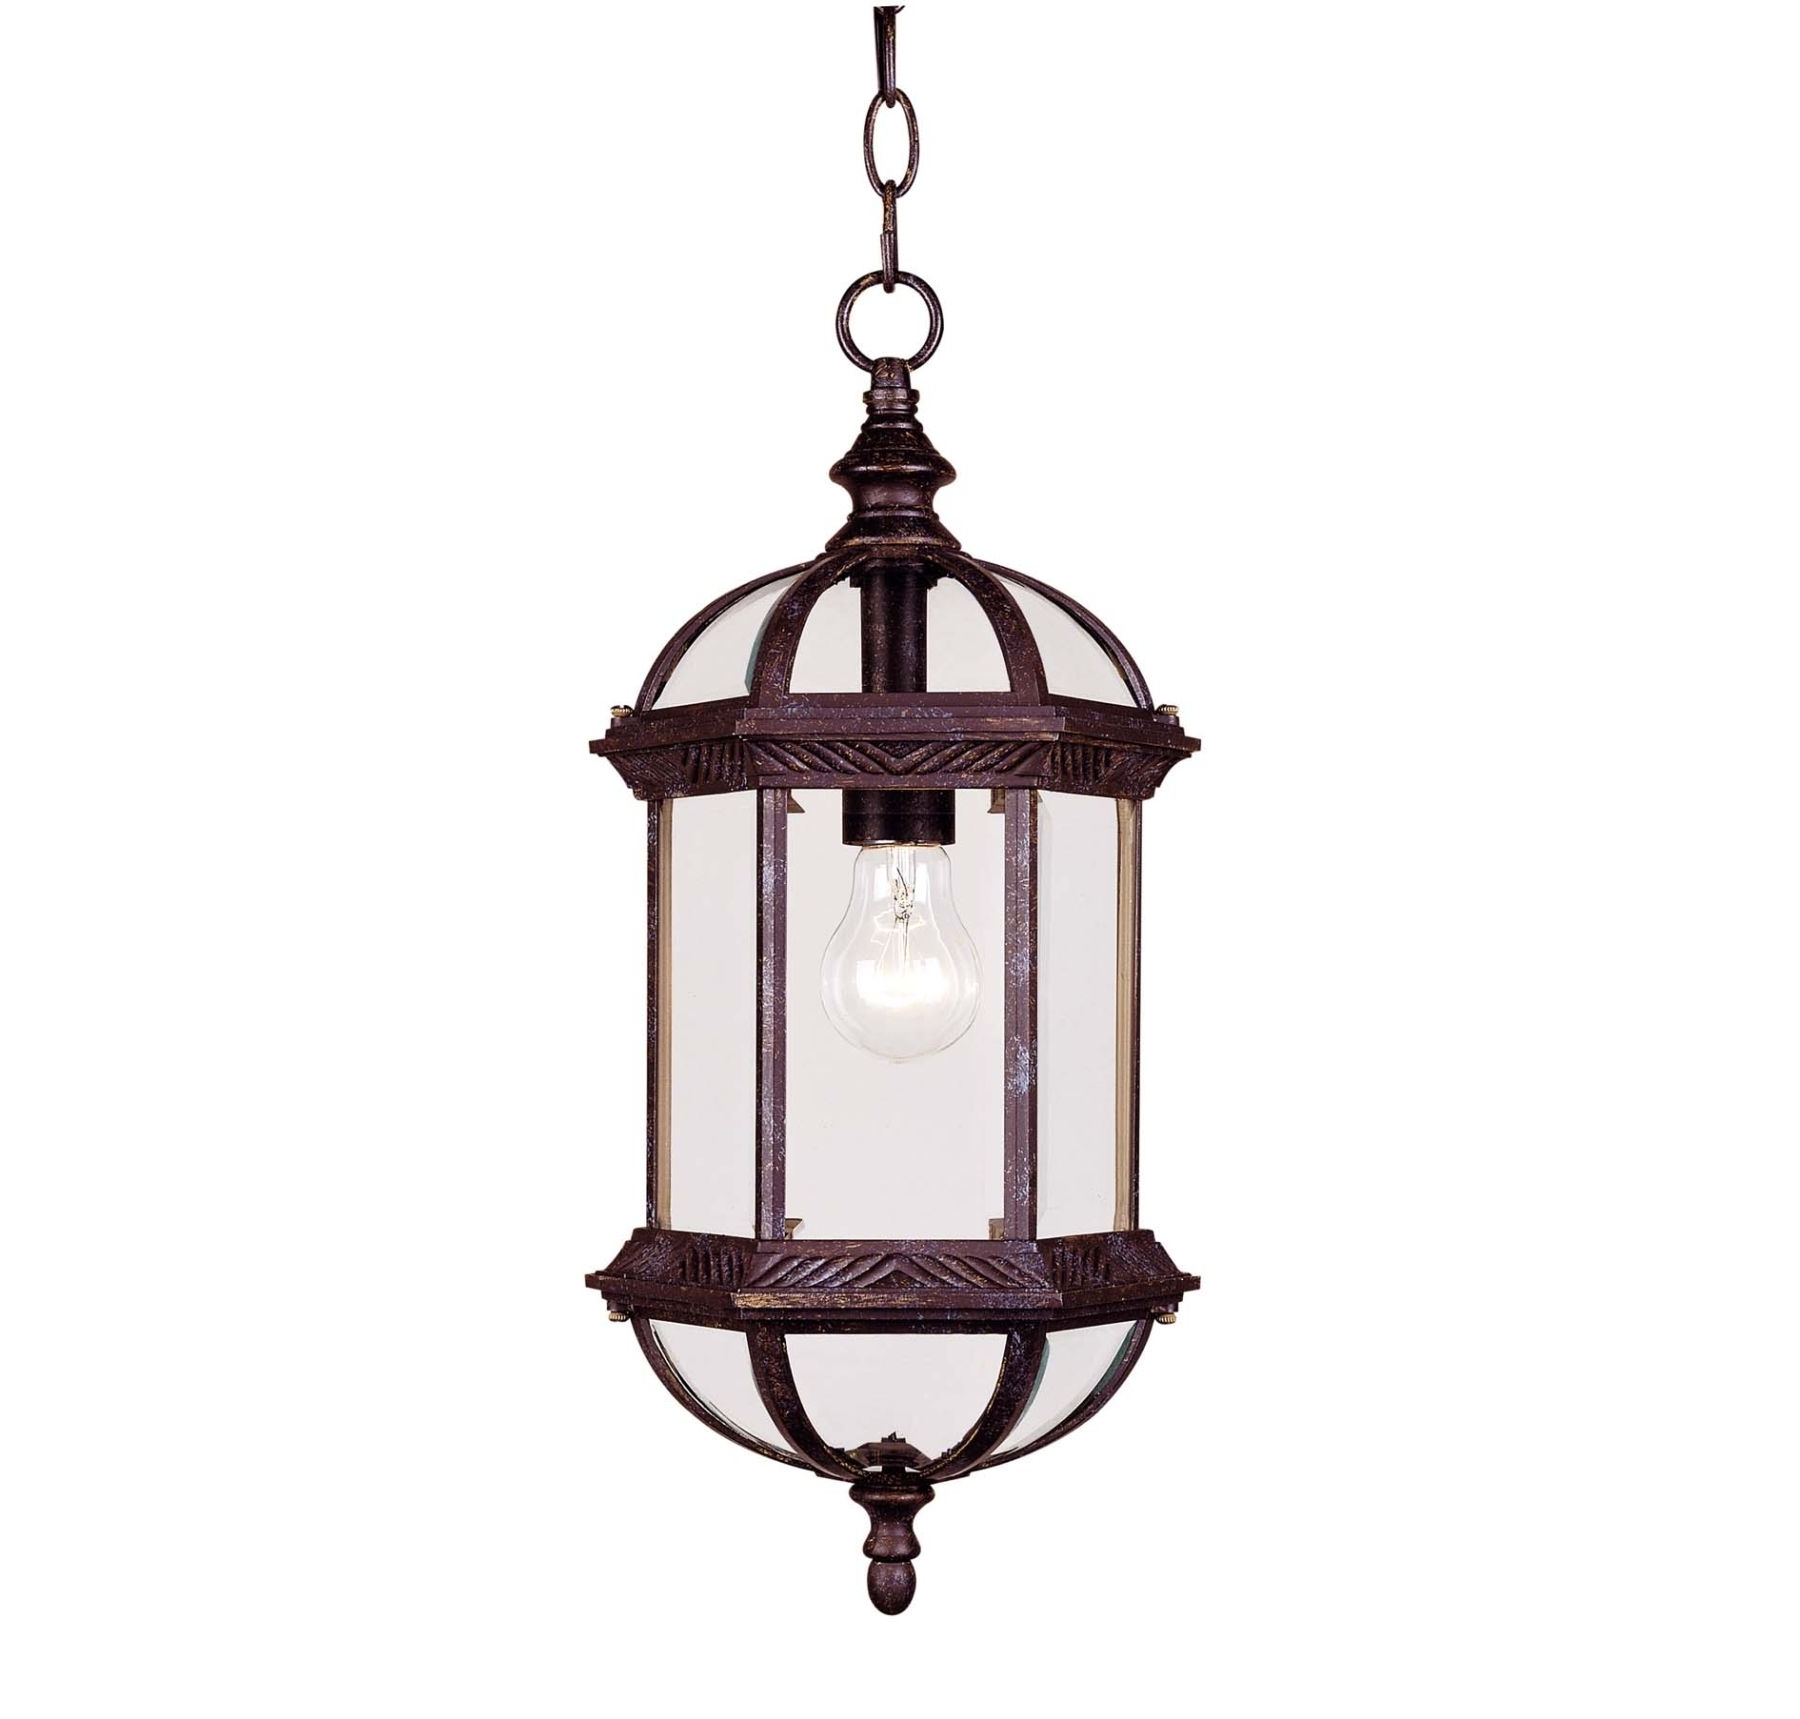 Widely Used Outdoor Pole Lanterns Pertaining To Outdoor Light : Glamorous Rustic Outdoor Pole Lighting , Rustic (View 3 of 20)